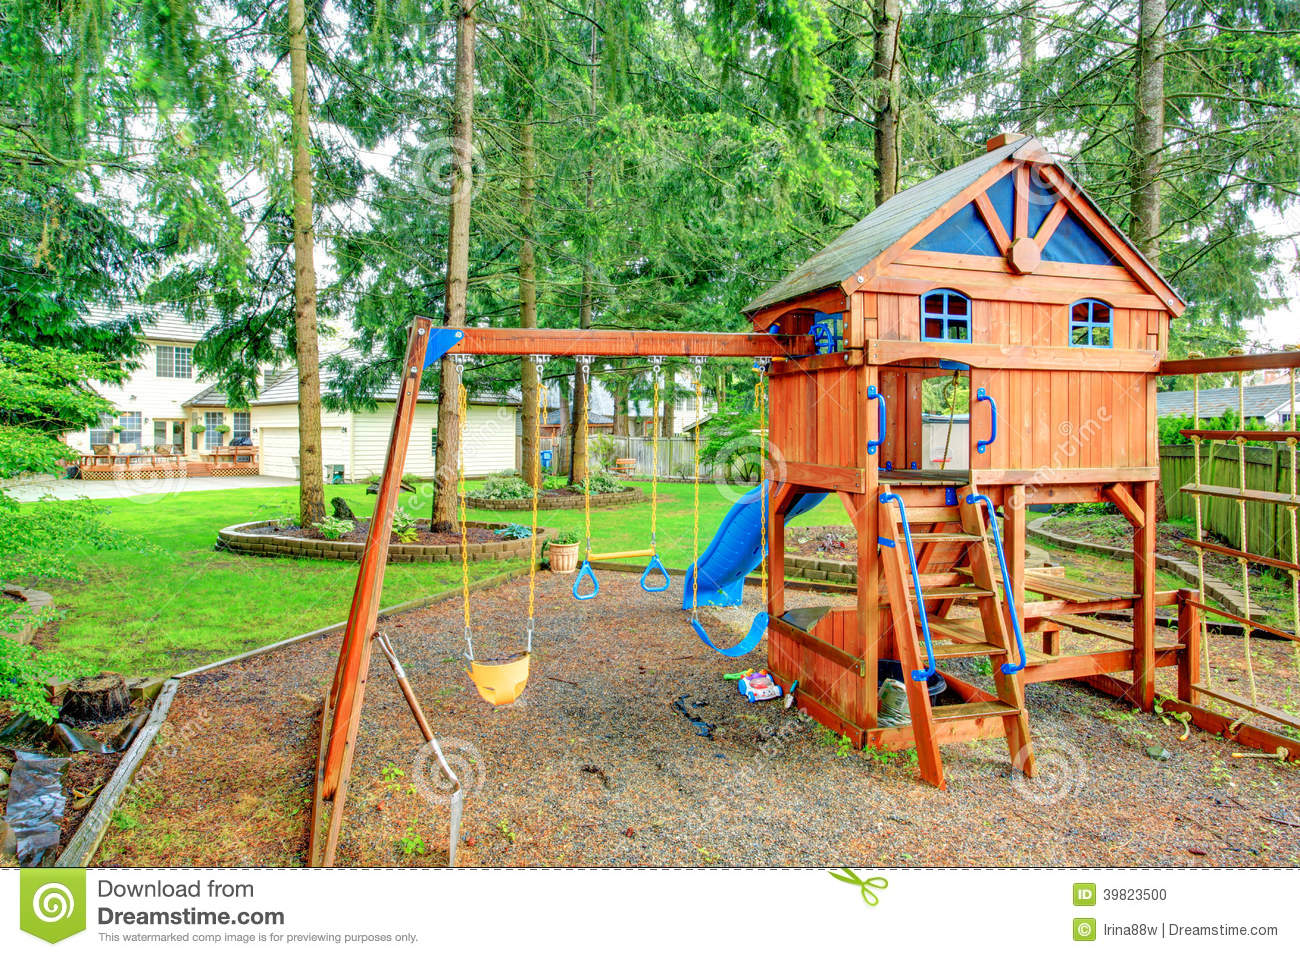 Best Backyard View : playground with swings, chute and small cute house with stairs